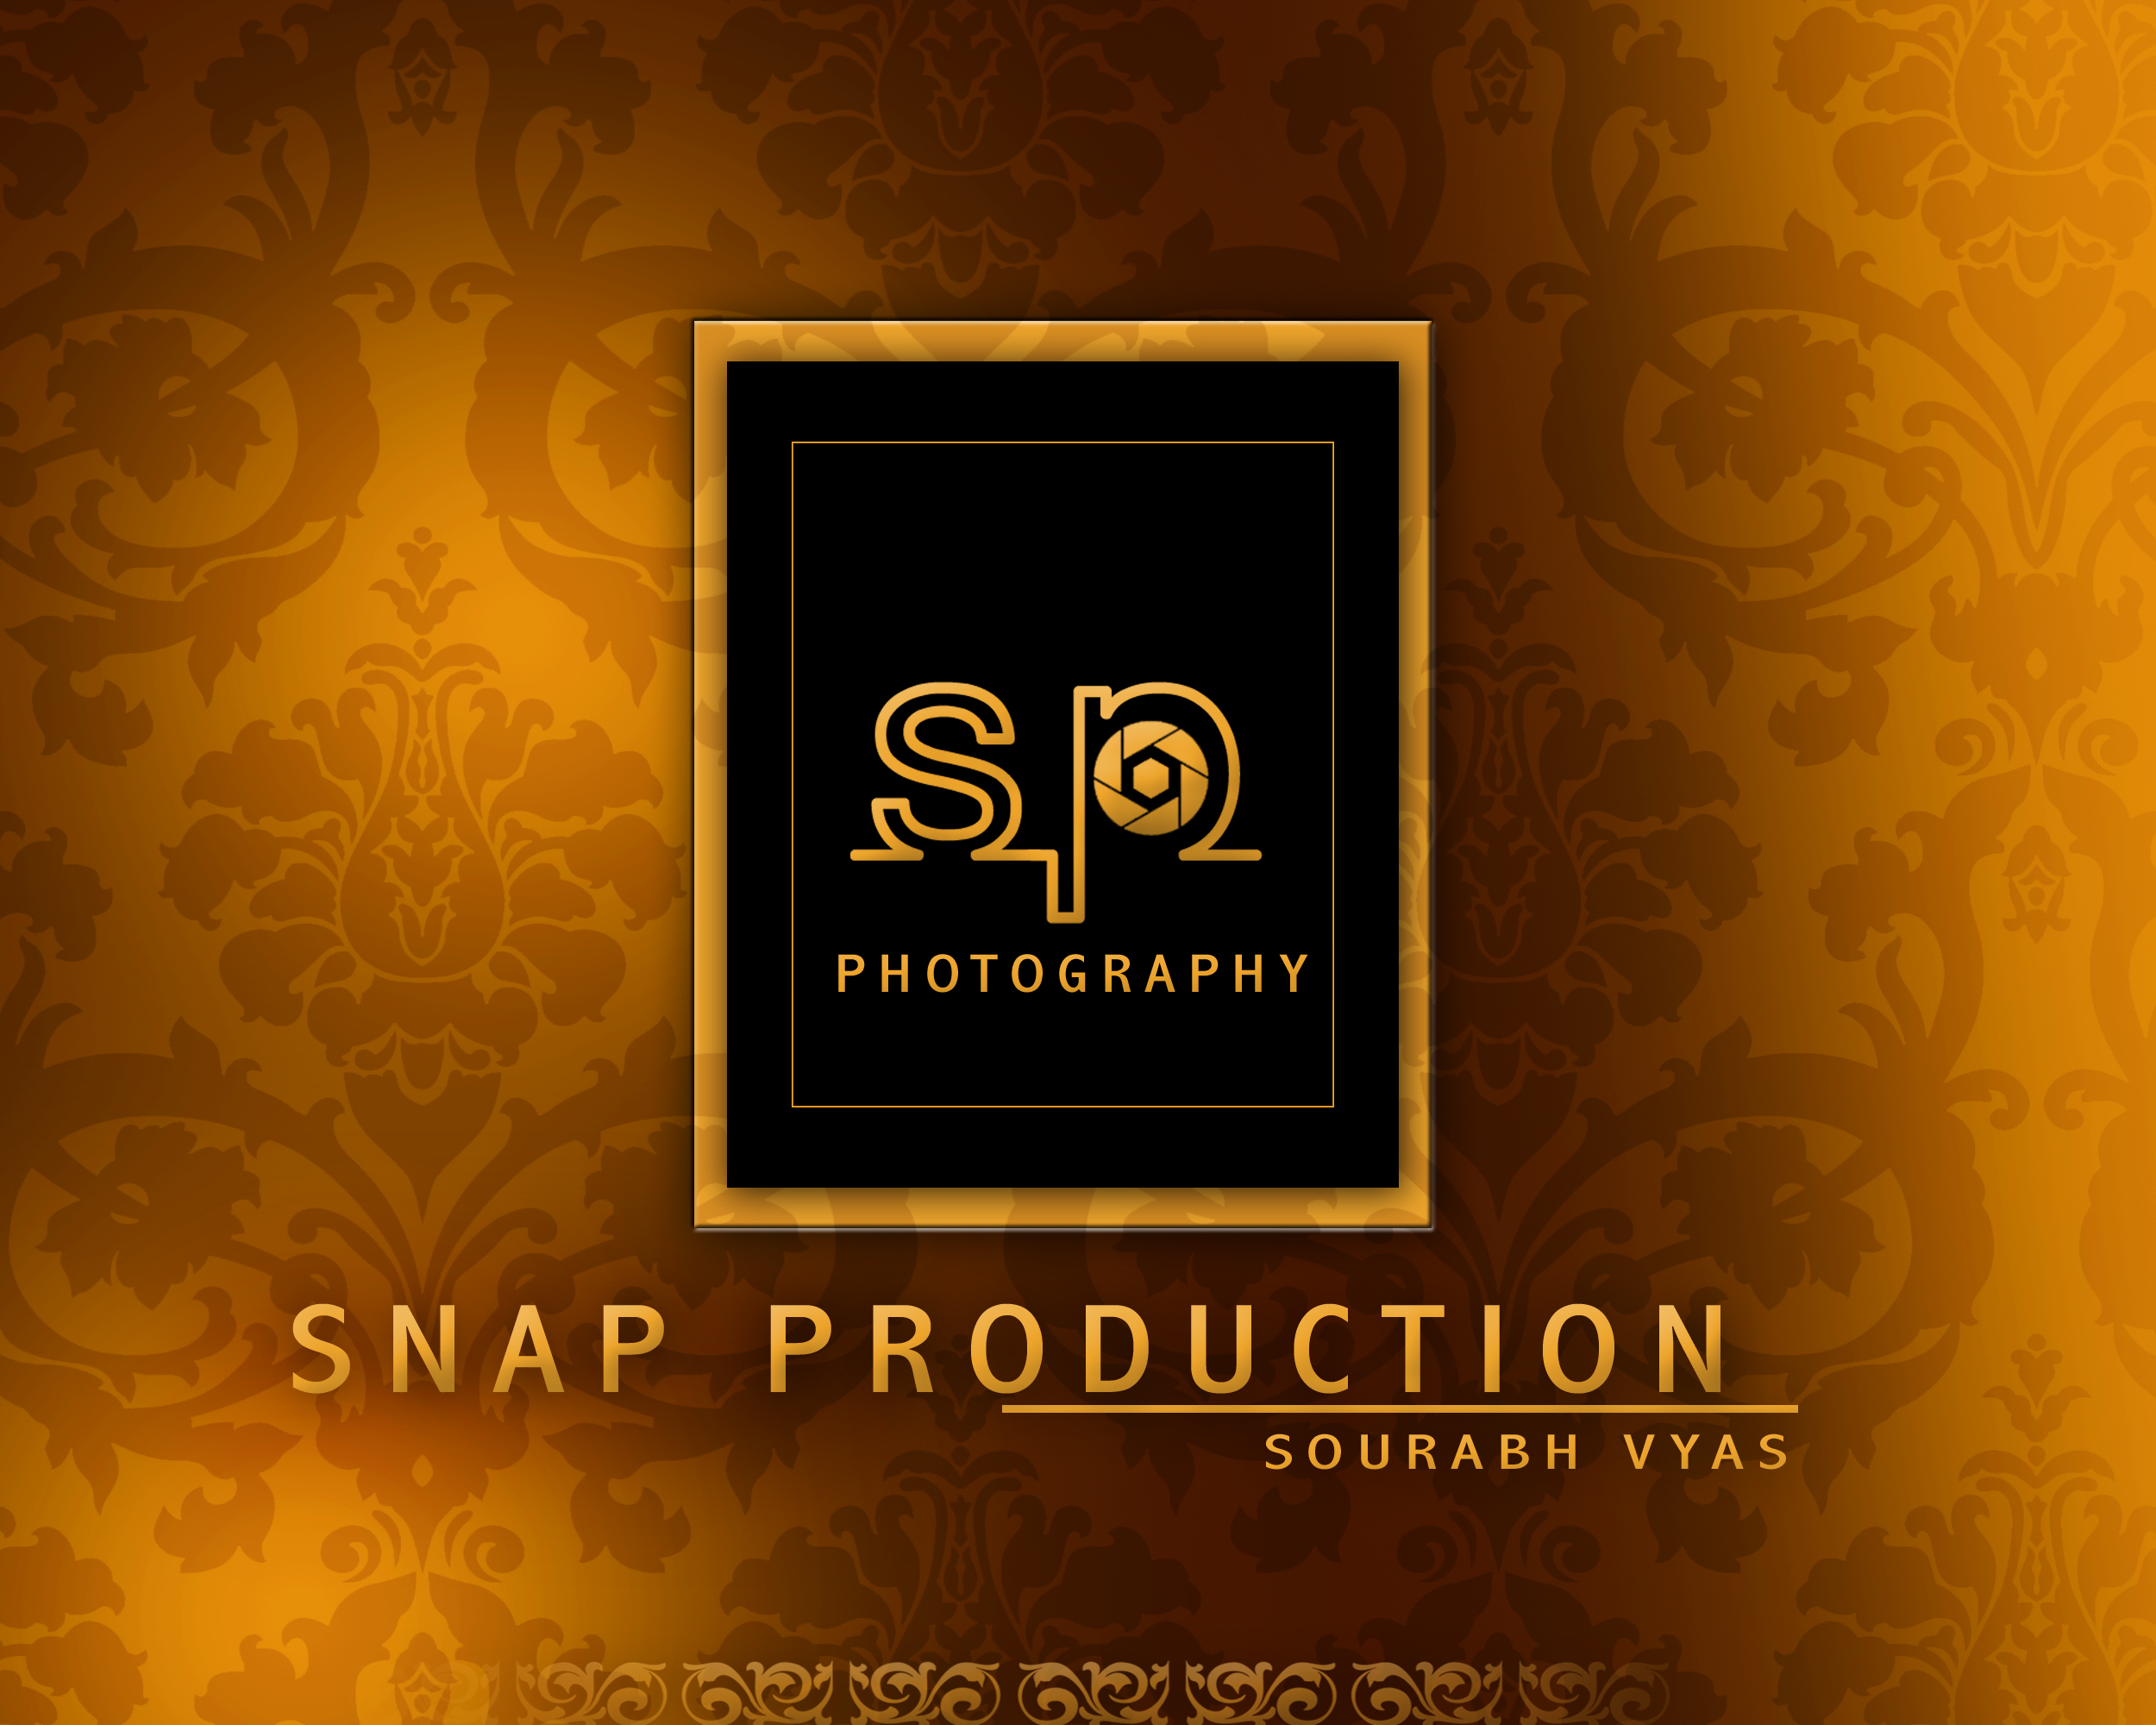 Snap Production